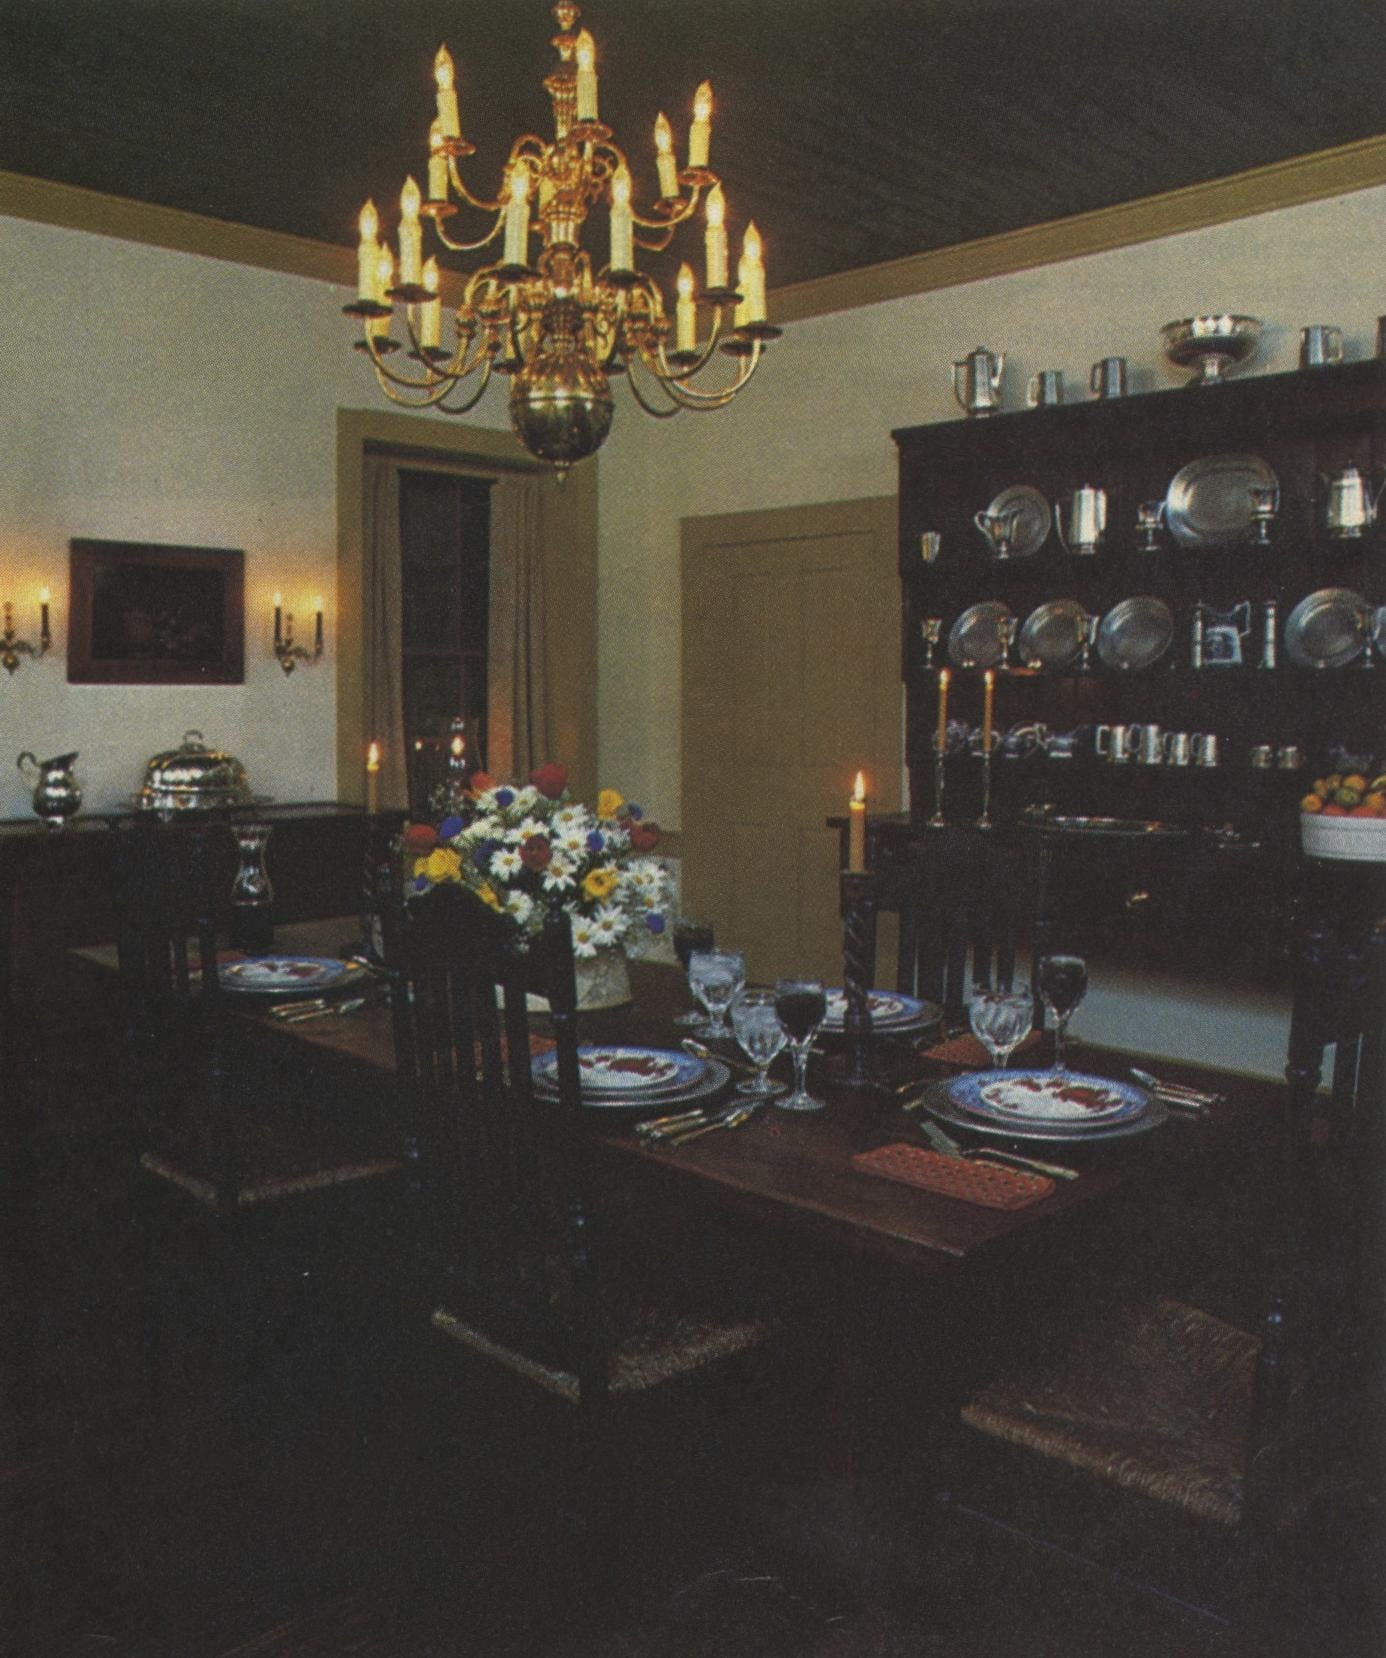 The formal dining room houses a wealth of collectibles, like an early-nineteenth-century brass chandelier from Philadelphia and a late-eighteenth-century Welsh dresser.